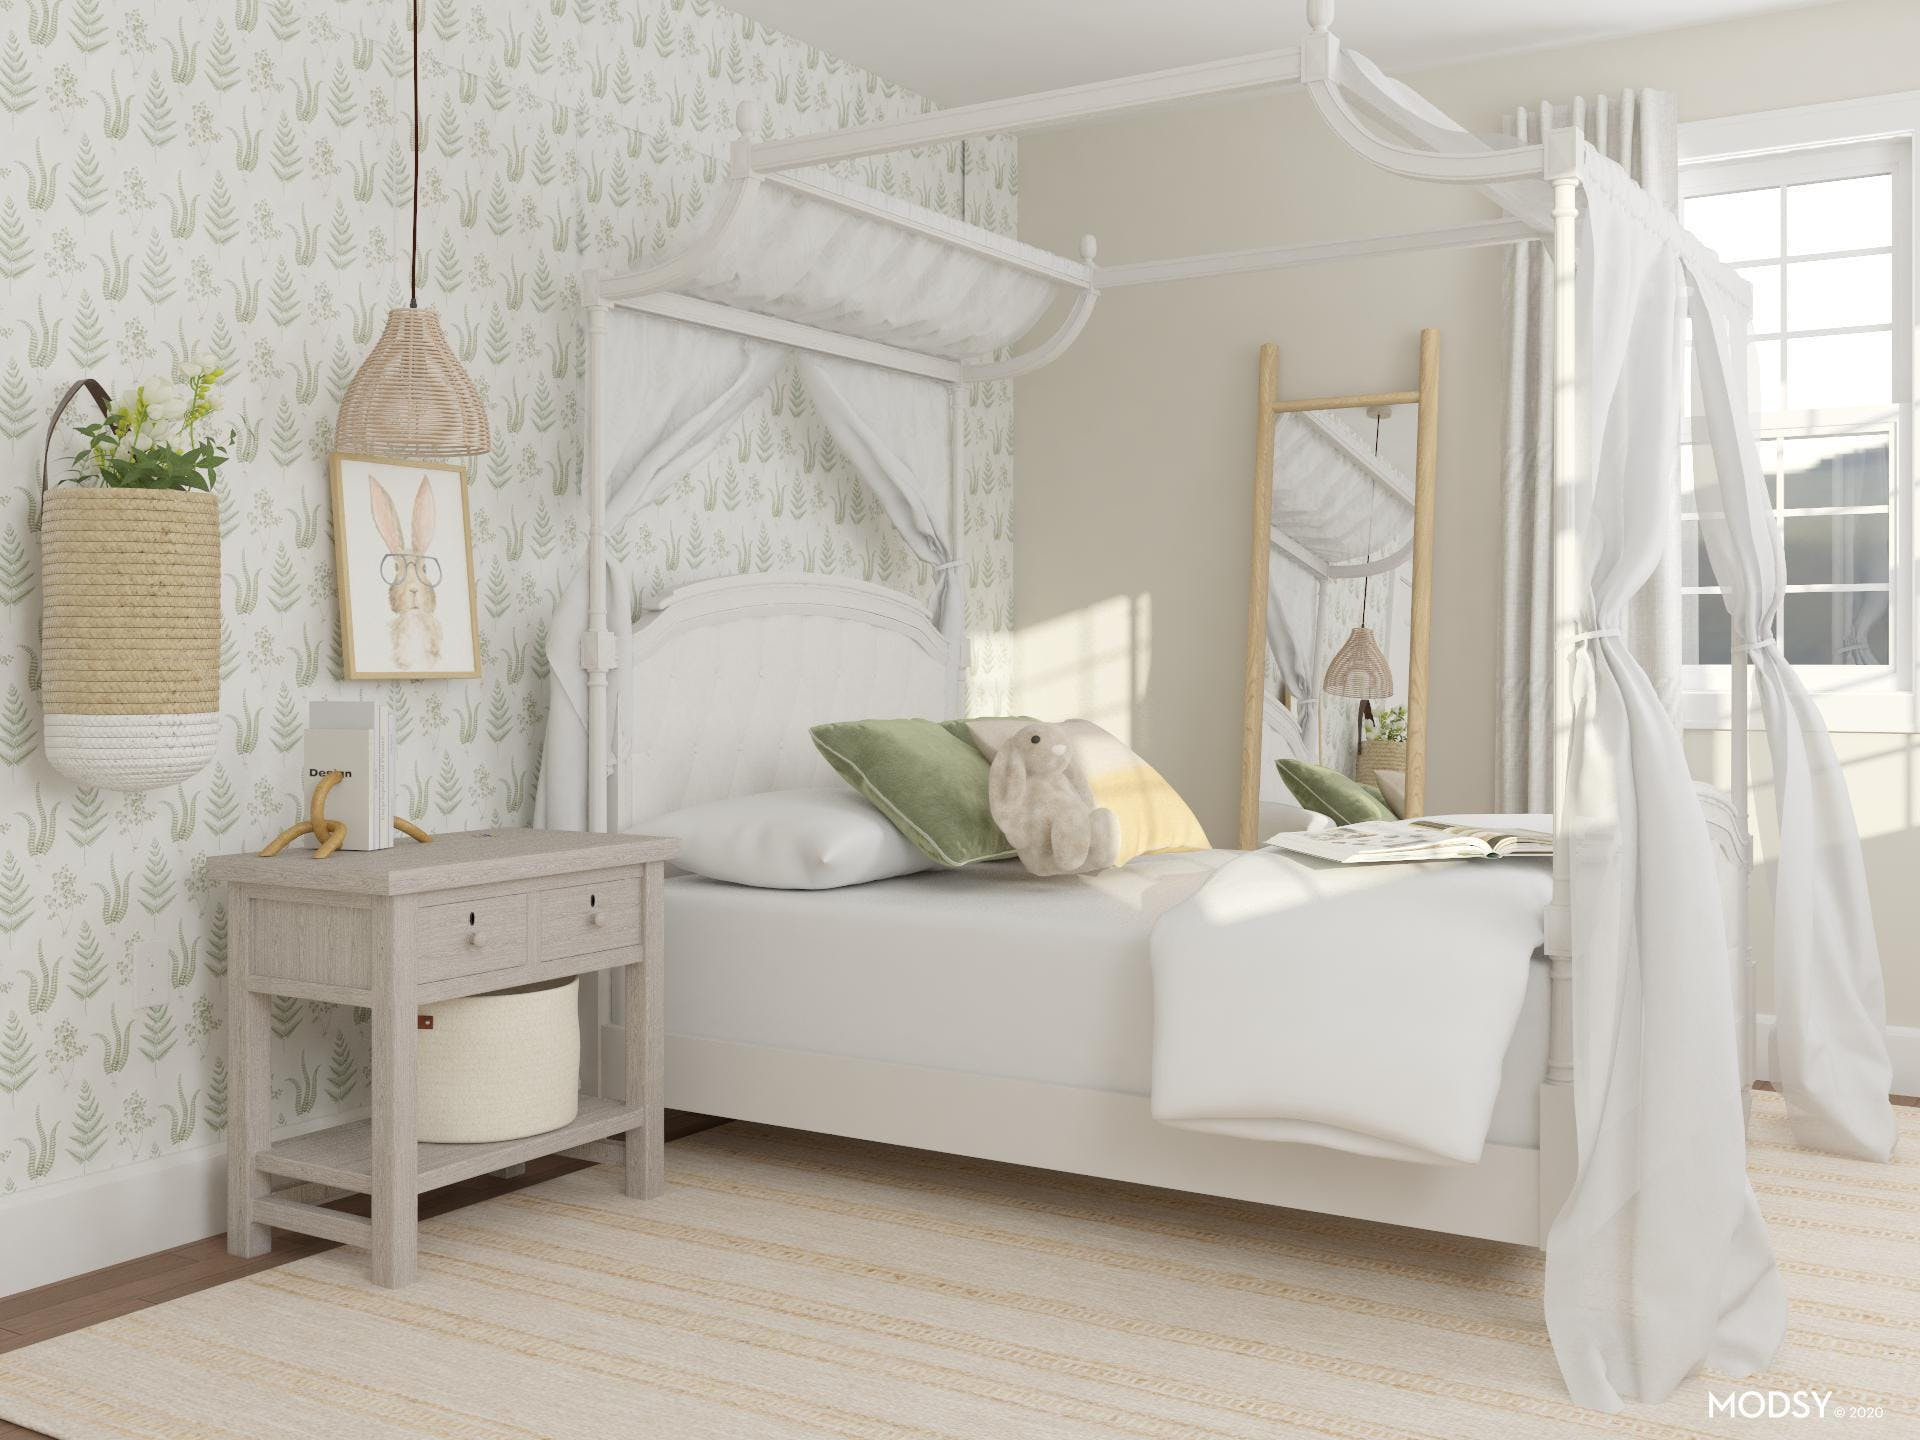 Beautiful Traditional Bedroom with Fanciful Canopy Bed